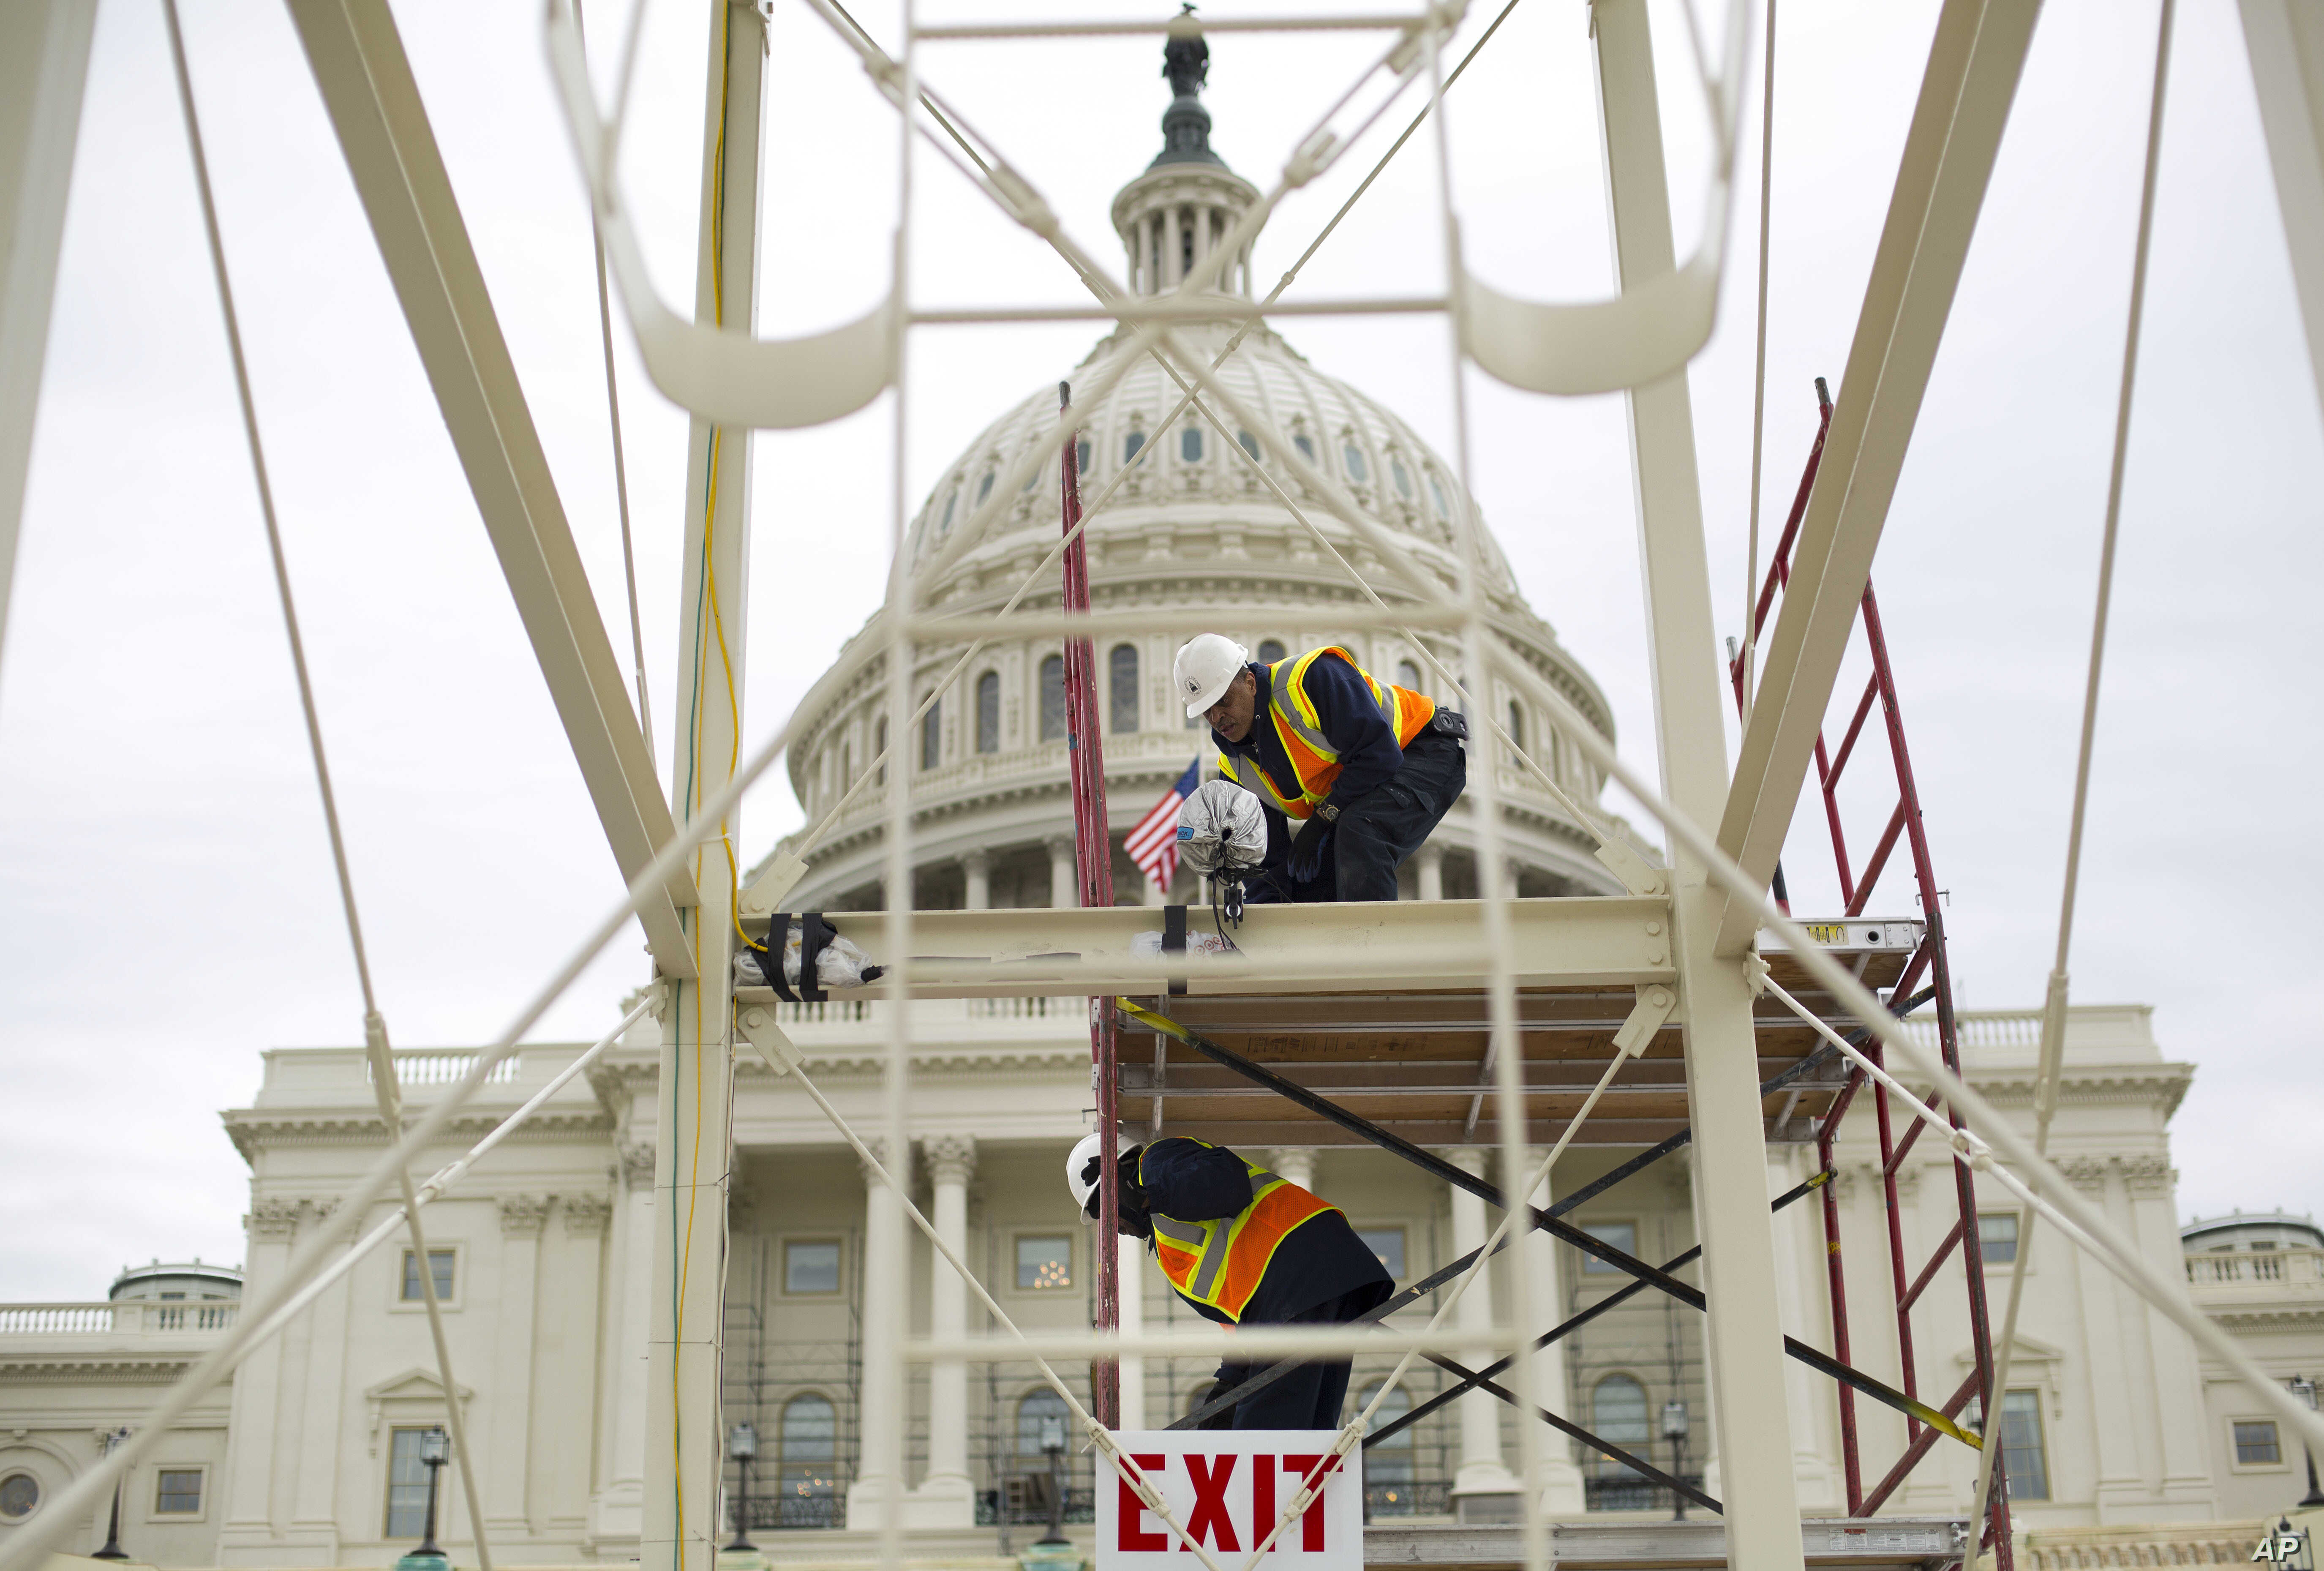 Construction continues on the inaugural platform in preparation for the swearing-in ceremonies for President-elect Donald Trump on the Capitol steps in Washington, Dec. 8, 2016.